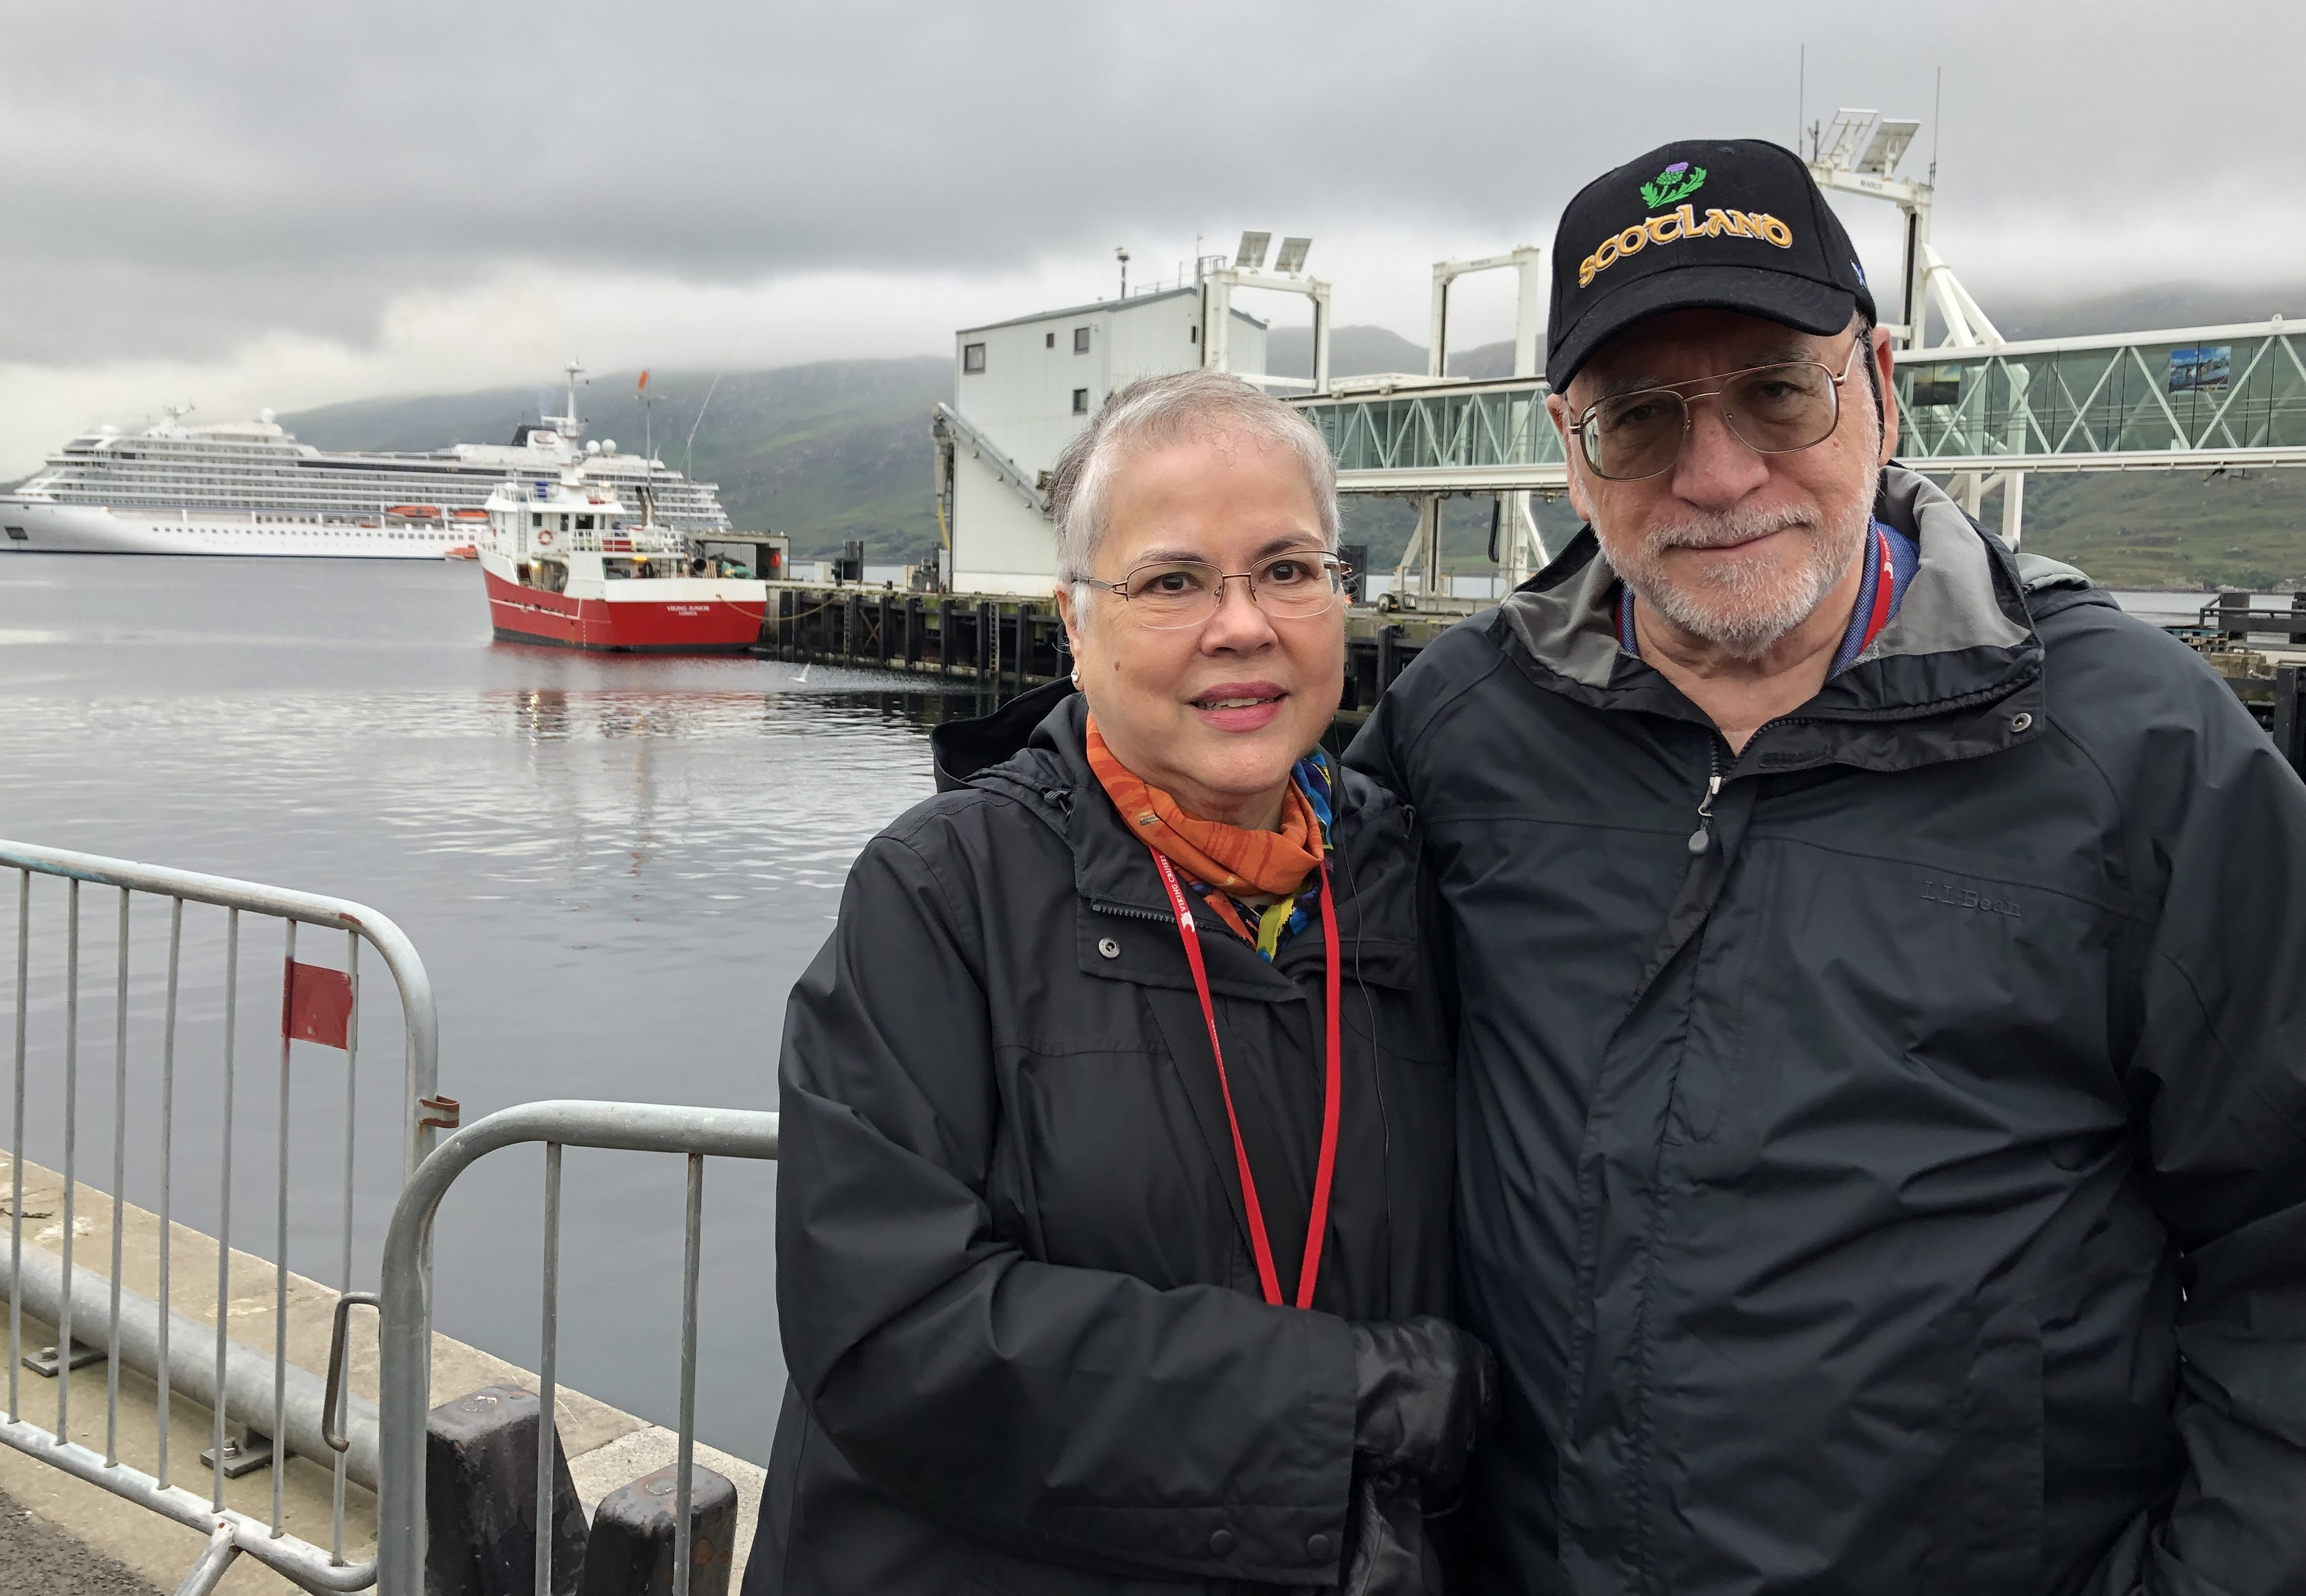 Ashby Ponds residents Gary and Ana McCollim are avid travelers. They are pictured on a vacation in Ullapool, Scotland.